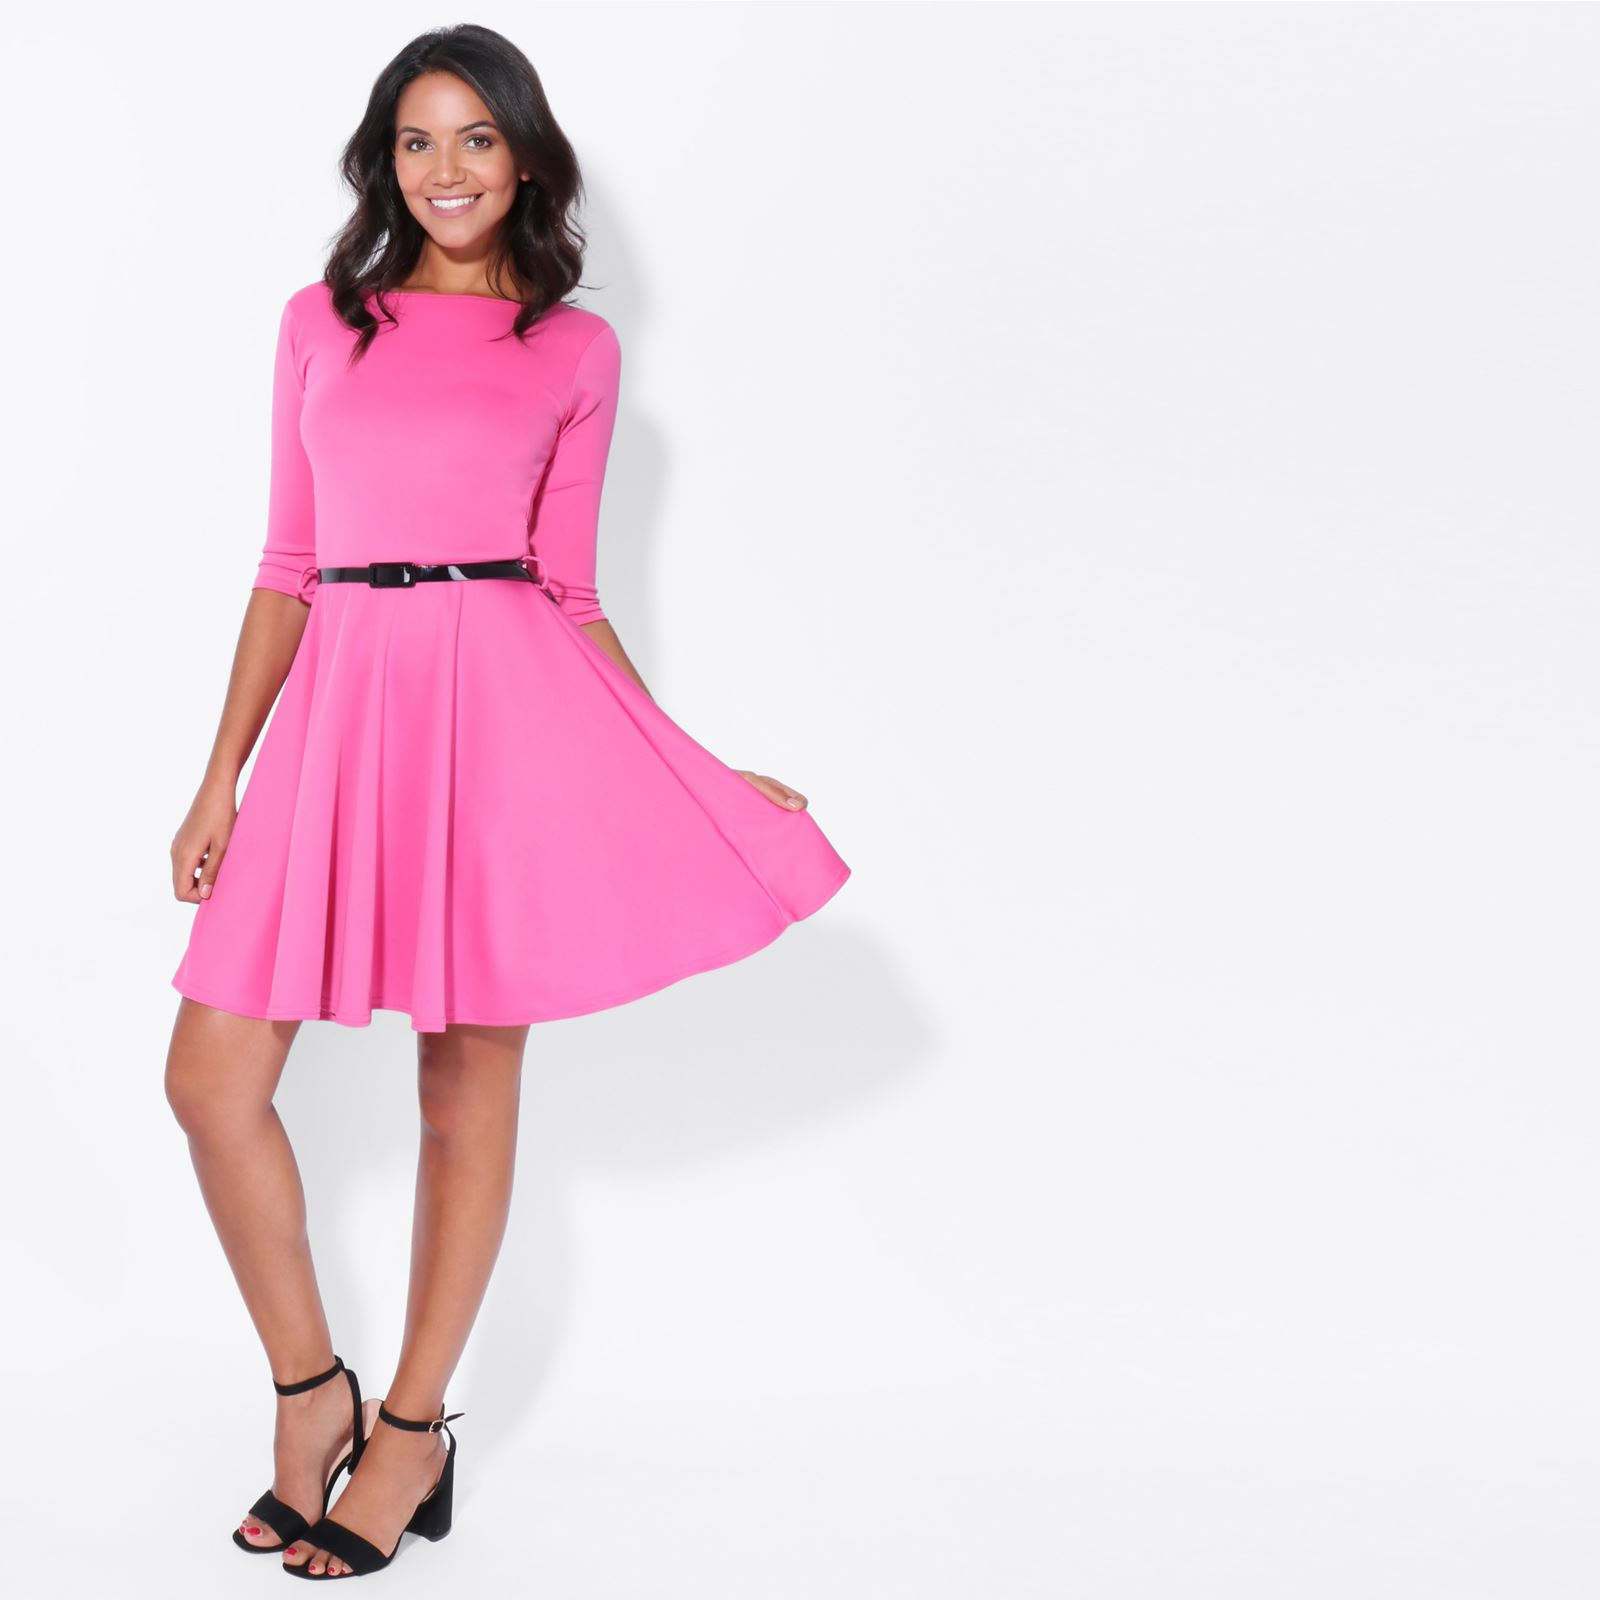 efecbd7d74 Womens Classic Pleated Flared Skater Dress 3 4 Sleeve Mini Belted Evening  Party